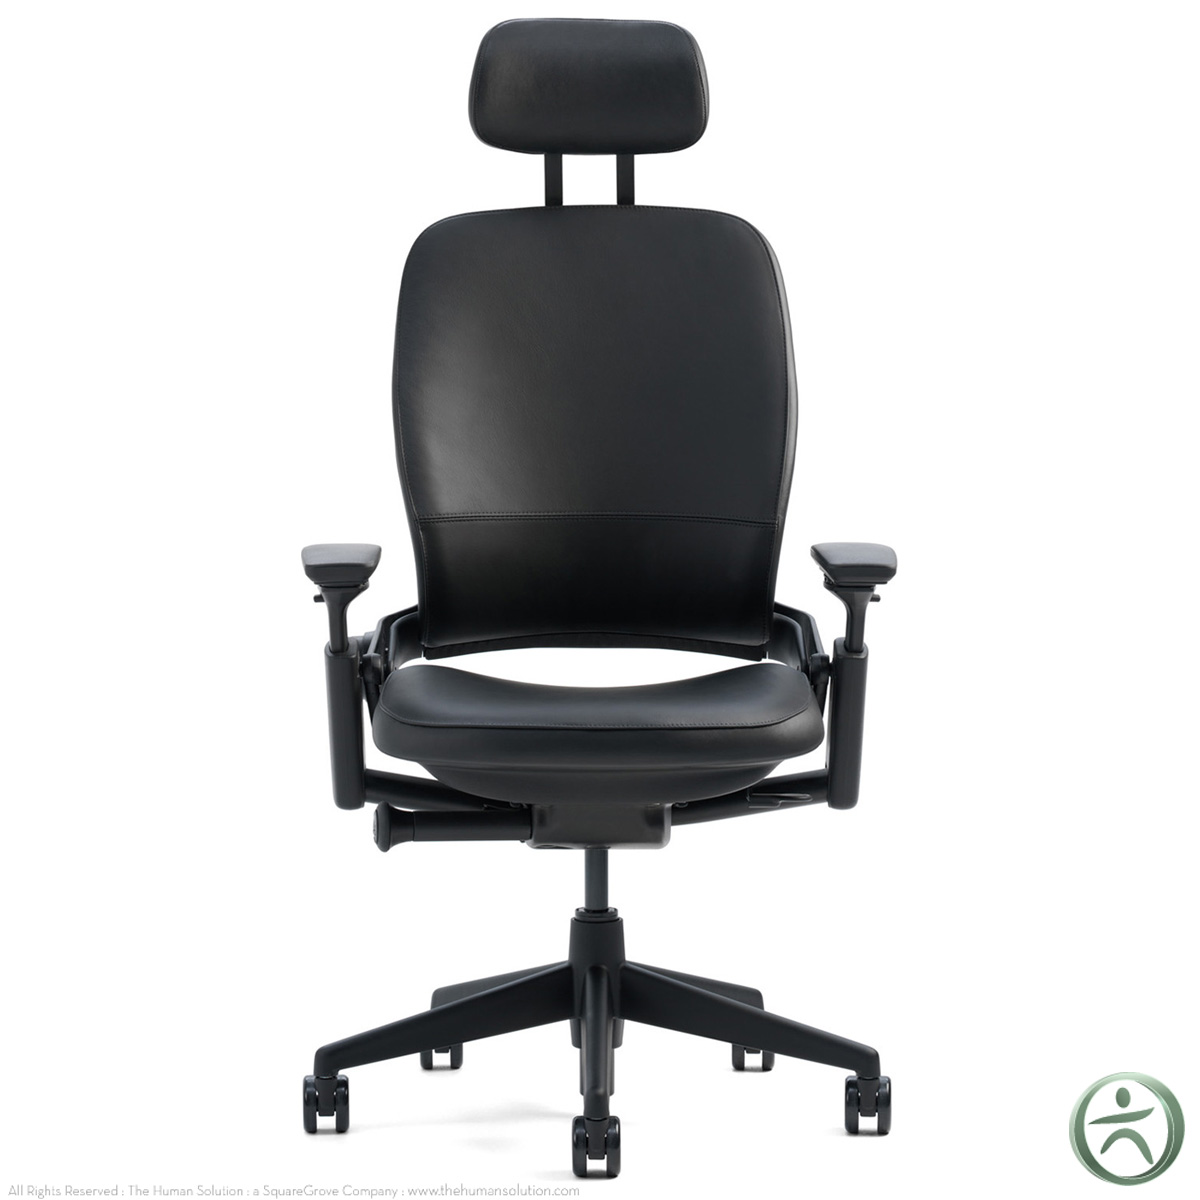 steelcase leap chair gaming reviews 2018 in leather shop chairs